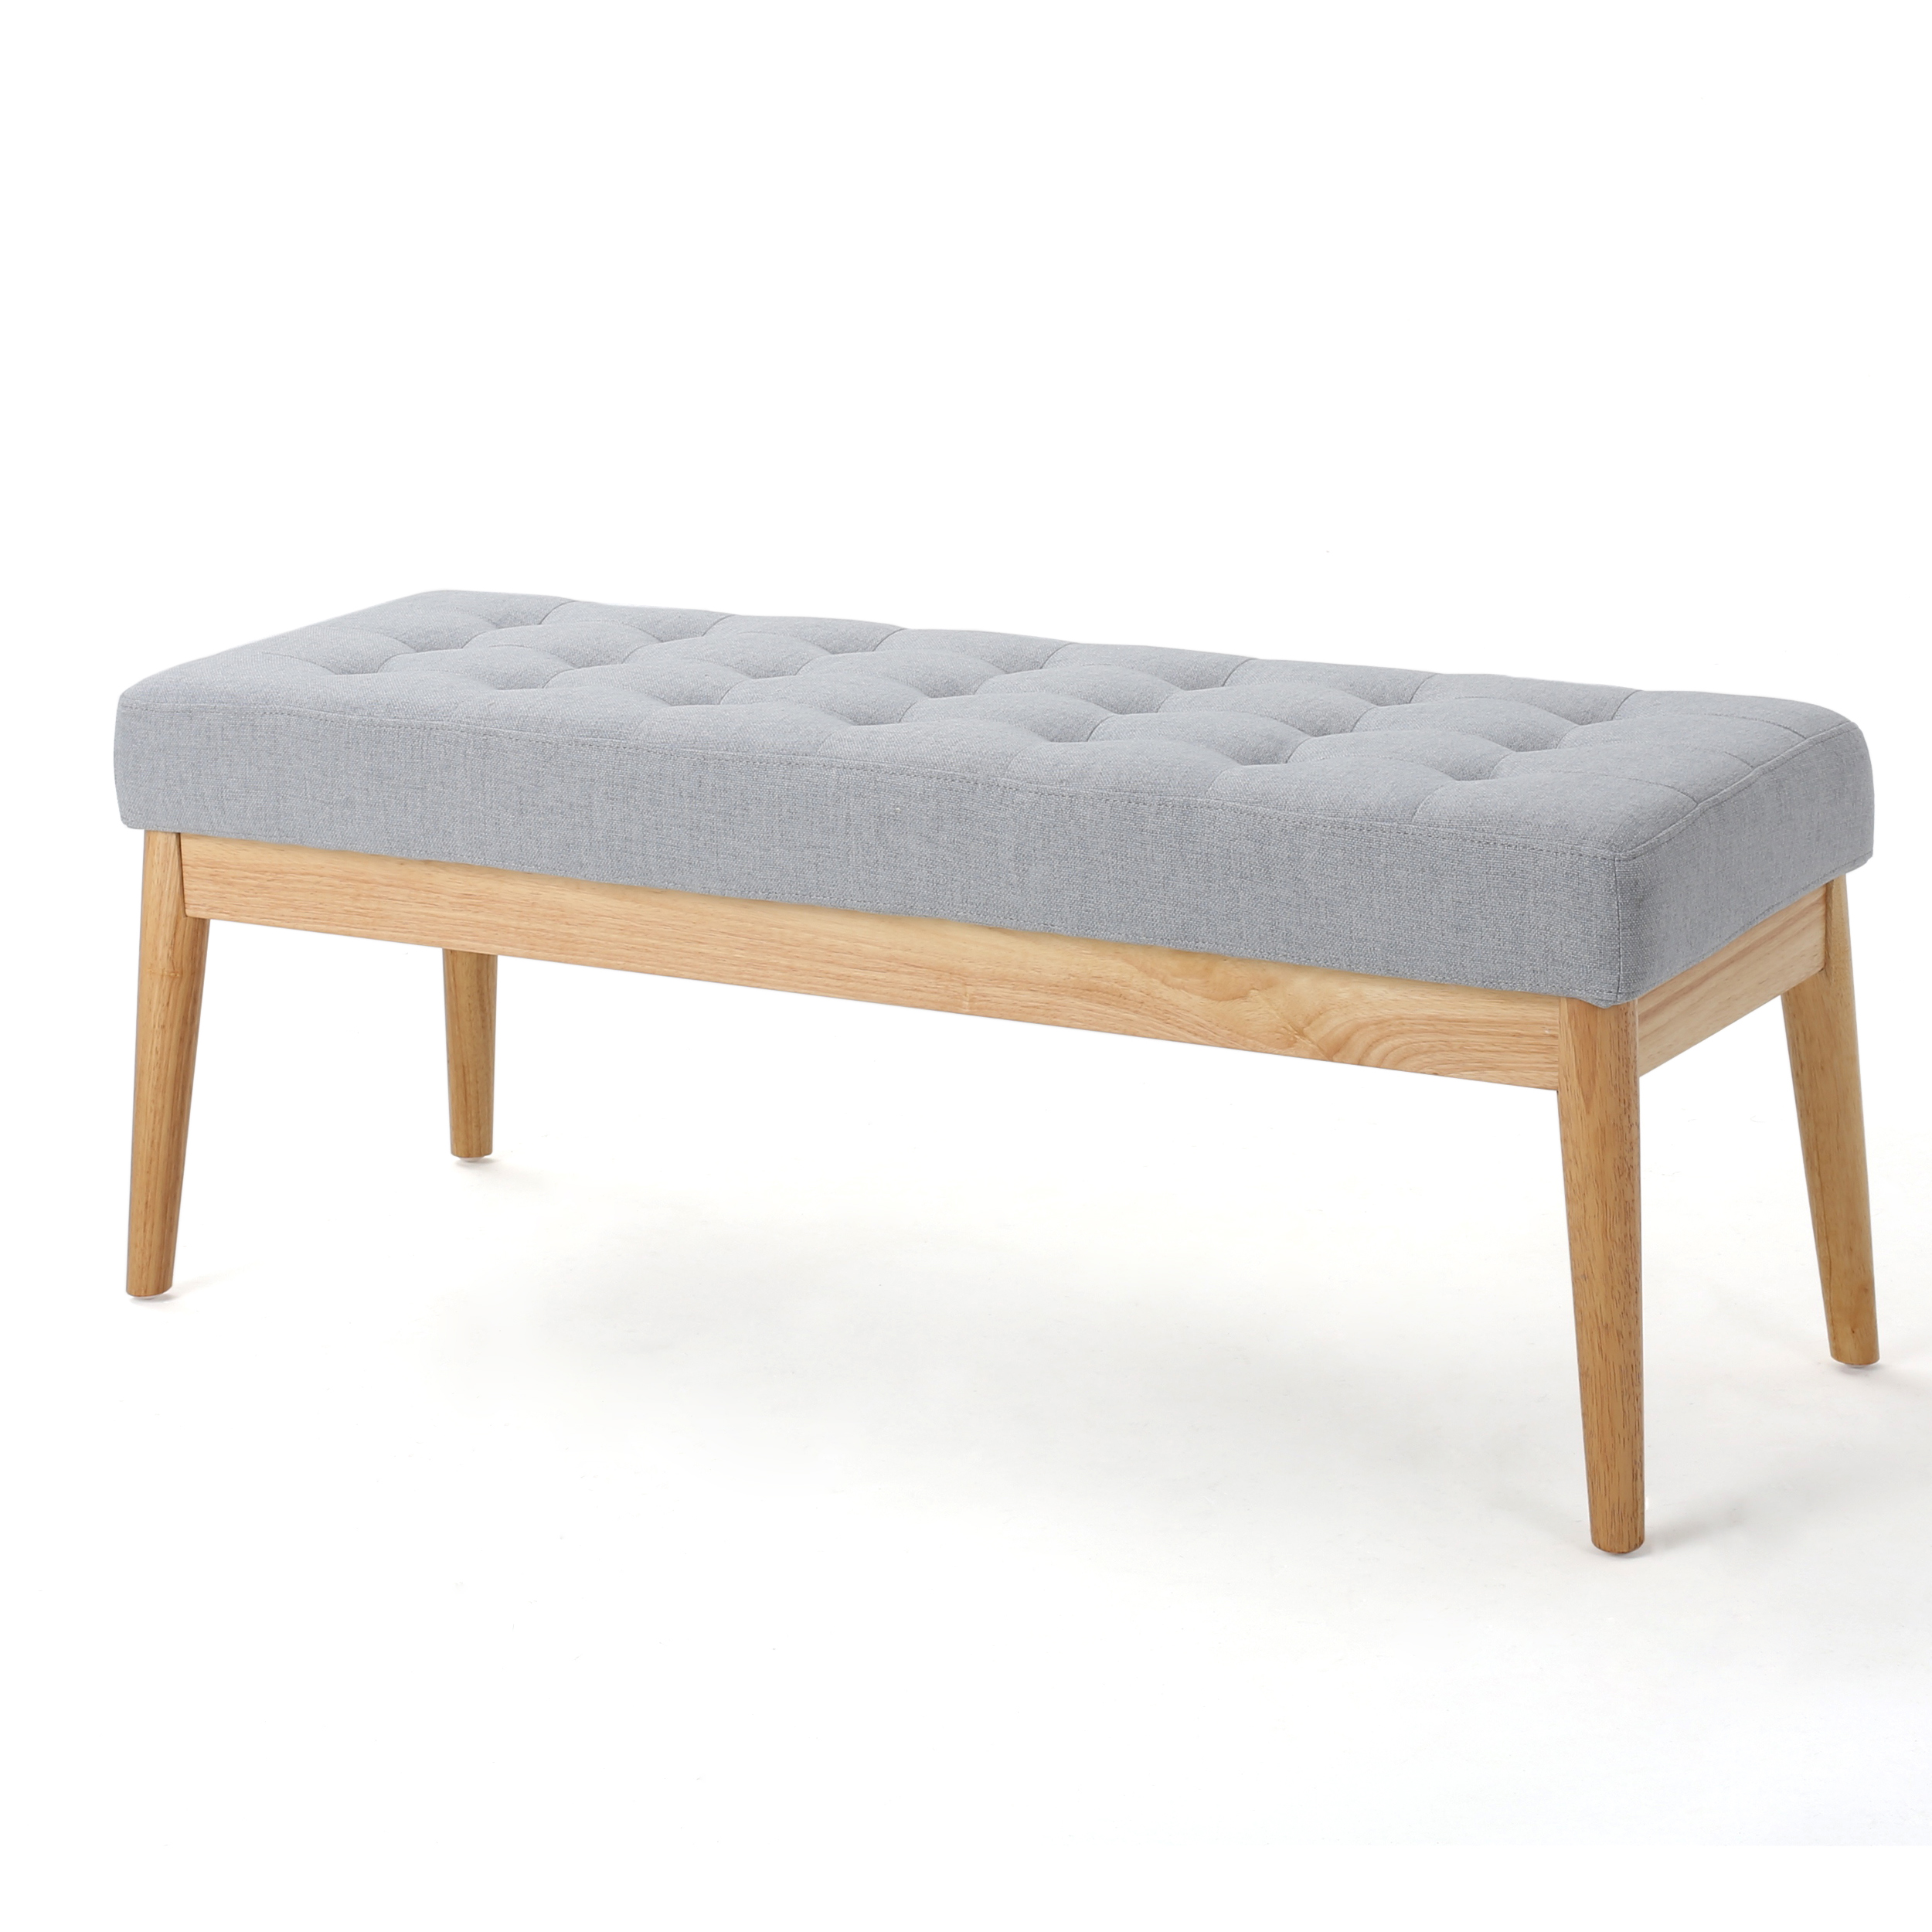 Anglo Fabric Bench, Light Grey - Walmart.com